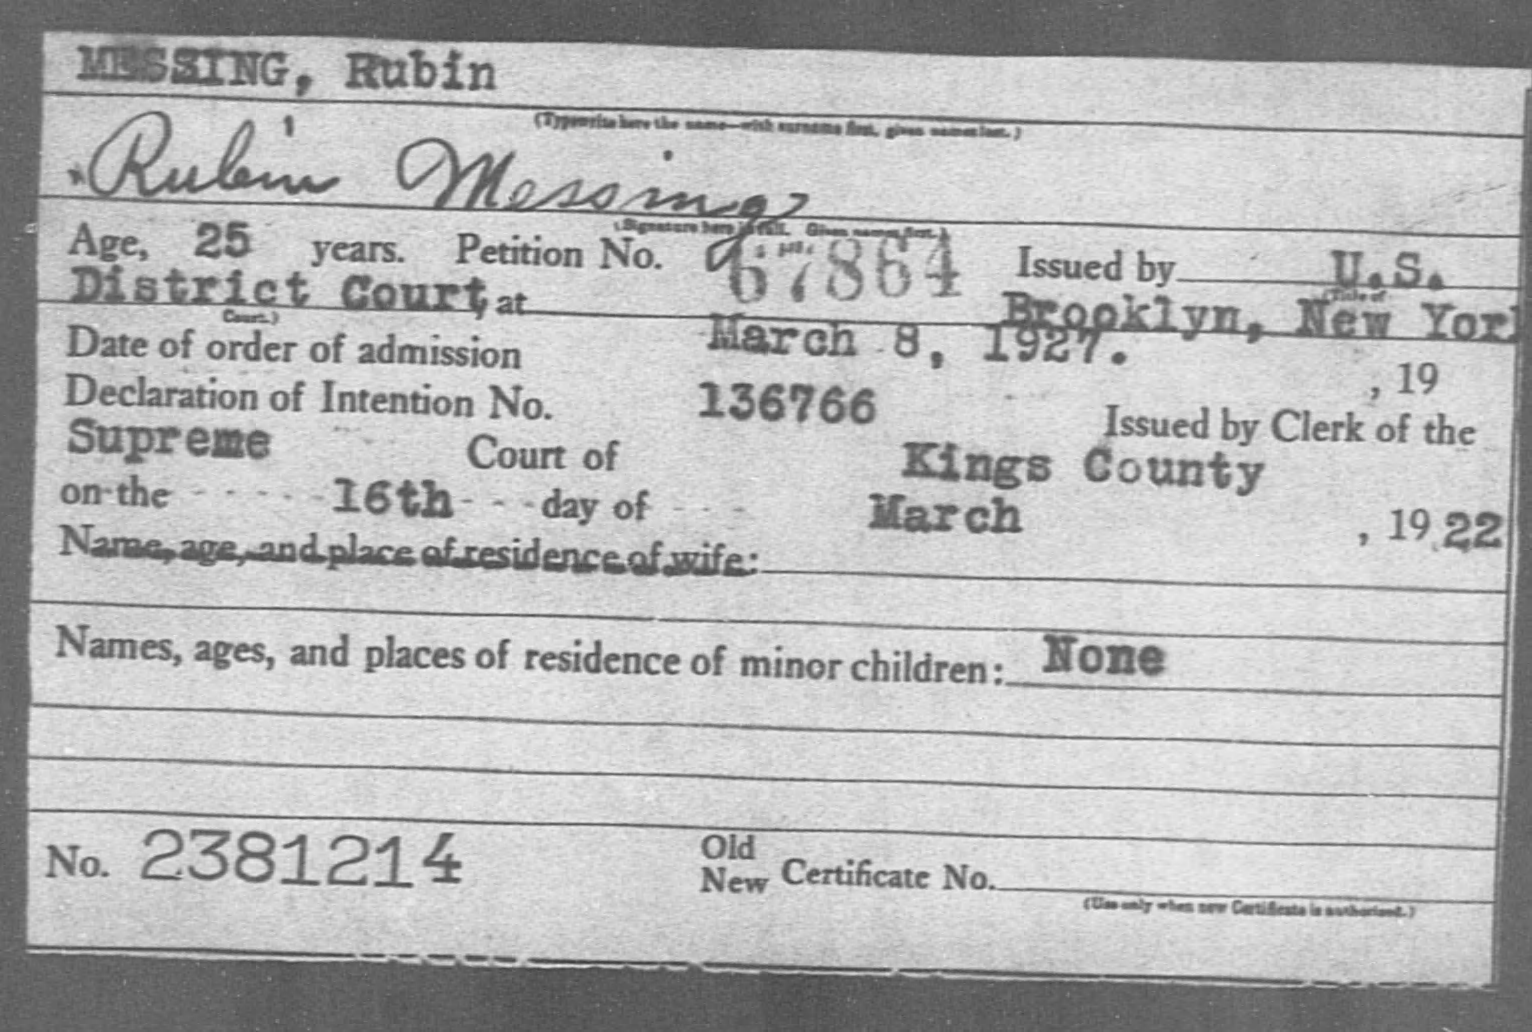 MESSING, Rubin - Born: [BLANK], Naturalized: 1927